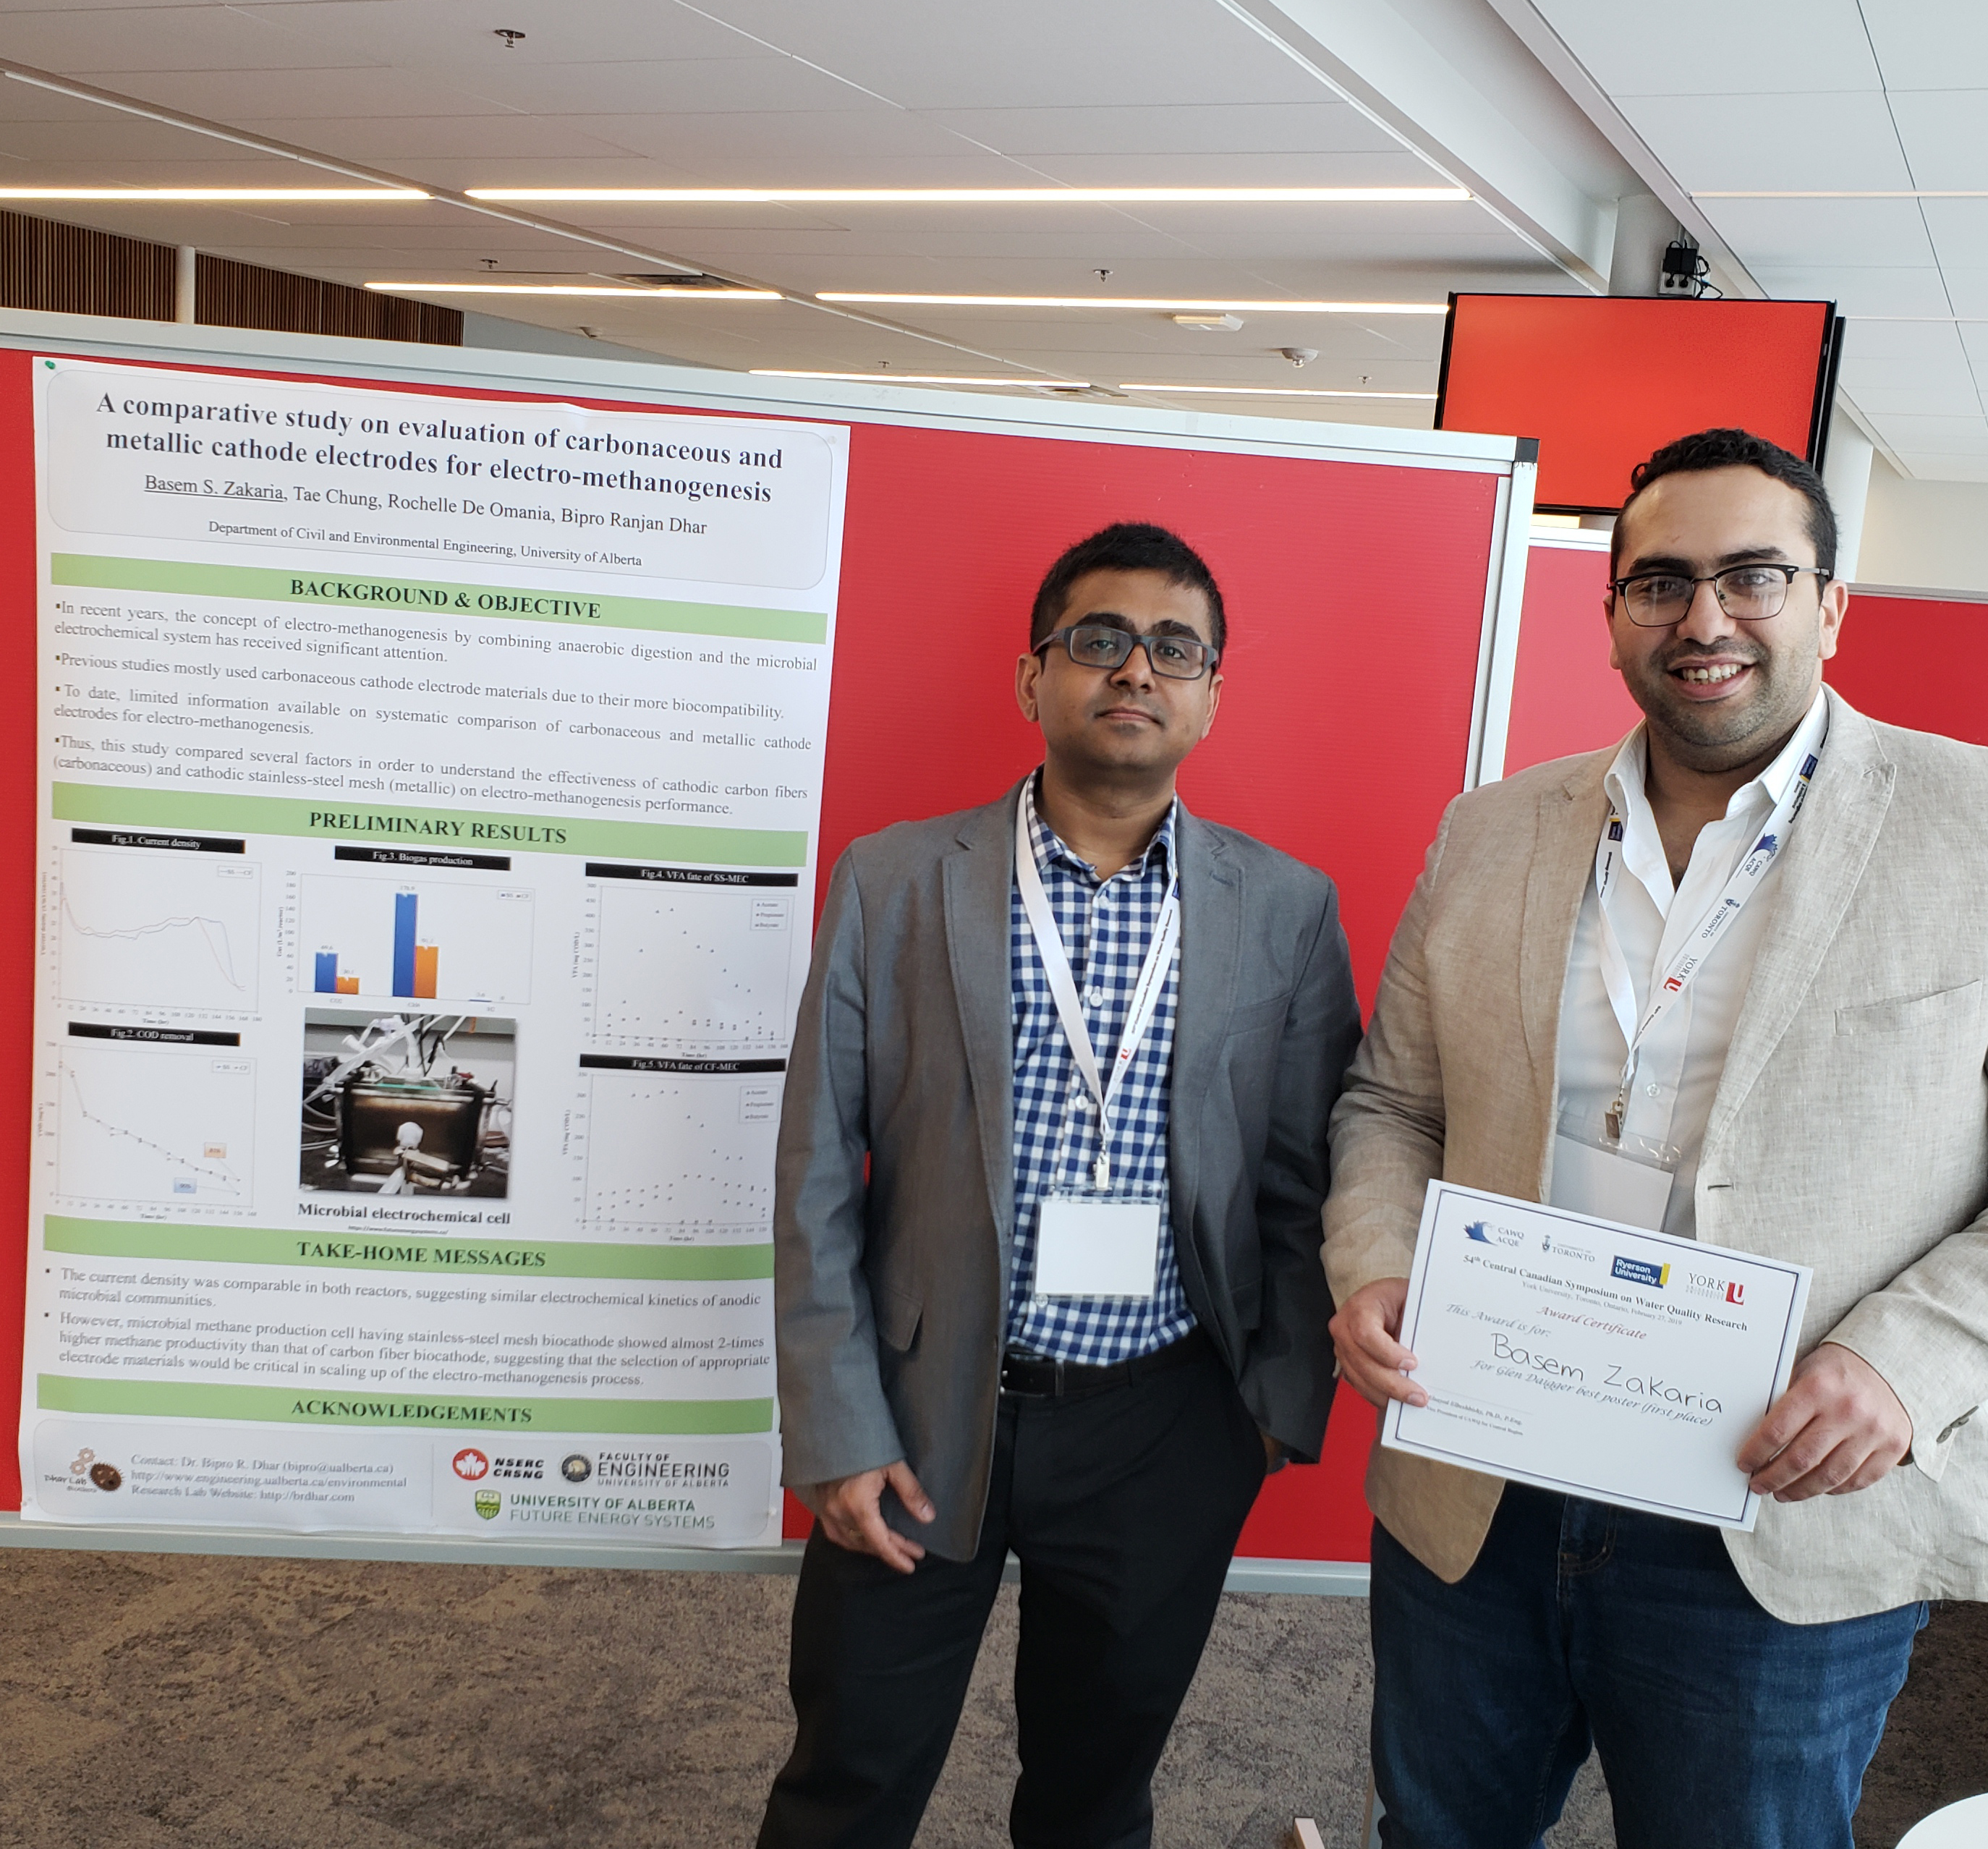 Basem won first prize in the poster competition at the 54th Central Canadian Symposium on Water Quality Research (Feb 27, 2019, Toronto).